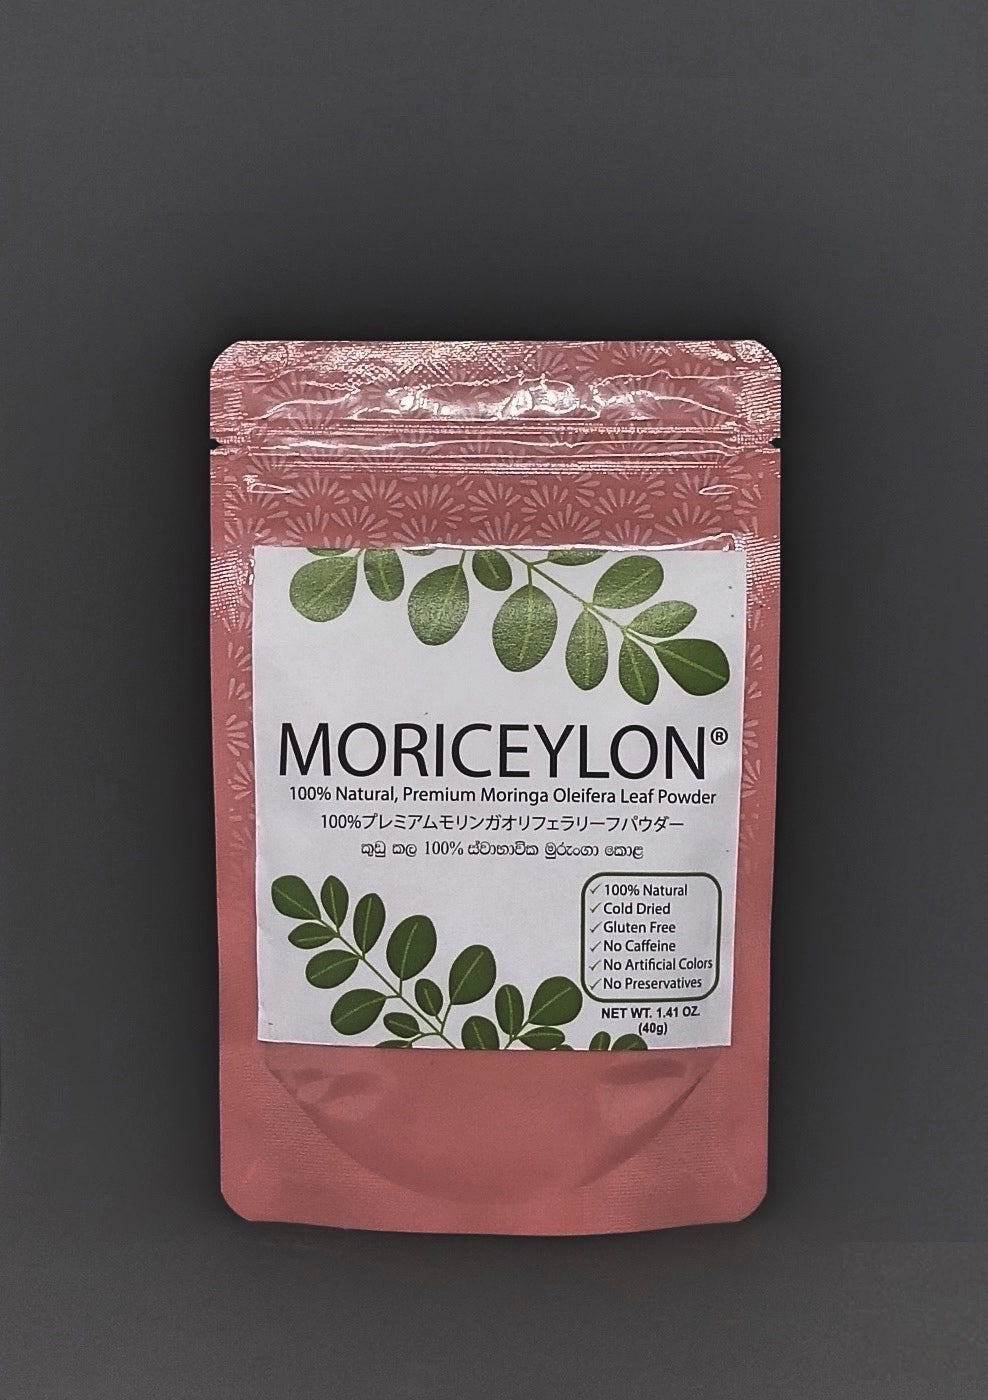 Moringa Oleifera Leaf Powder - 40g (1.41OZ)